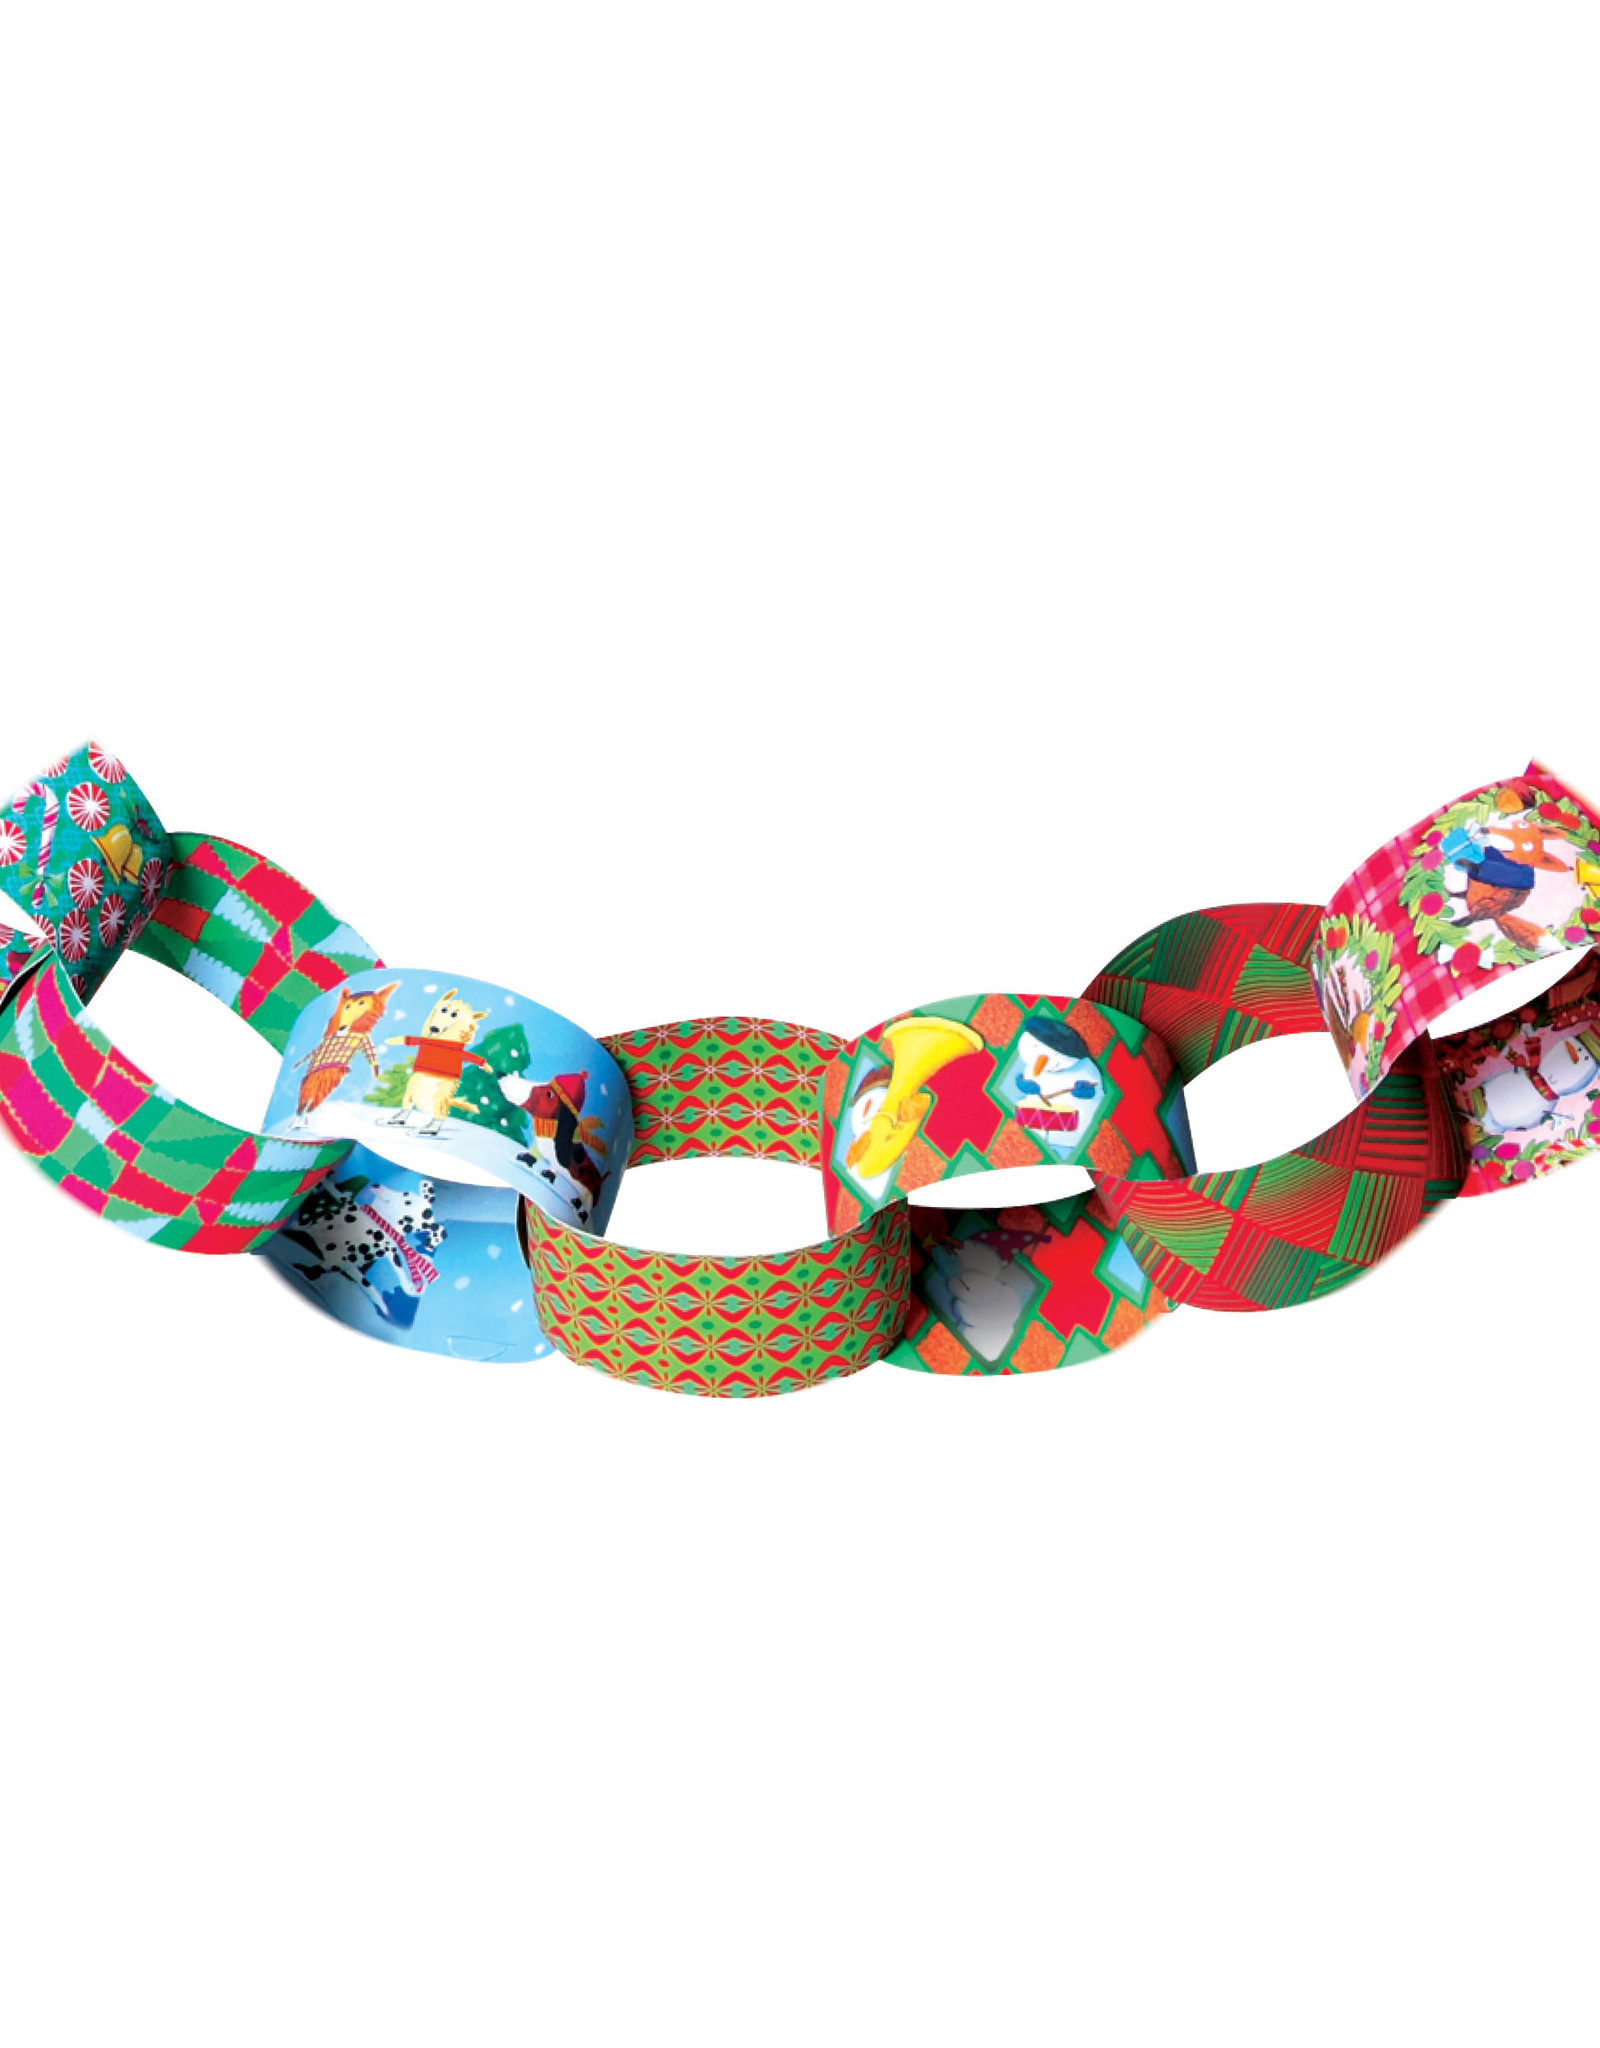 Eeboo Holiday Paper Chains